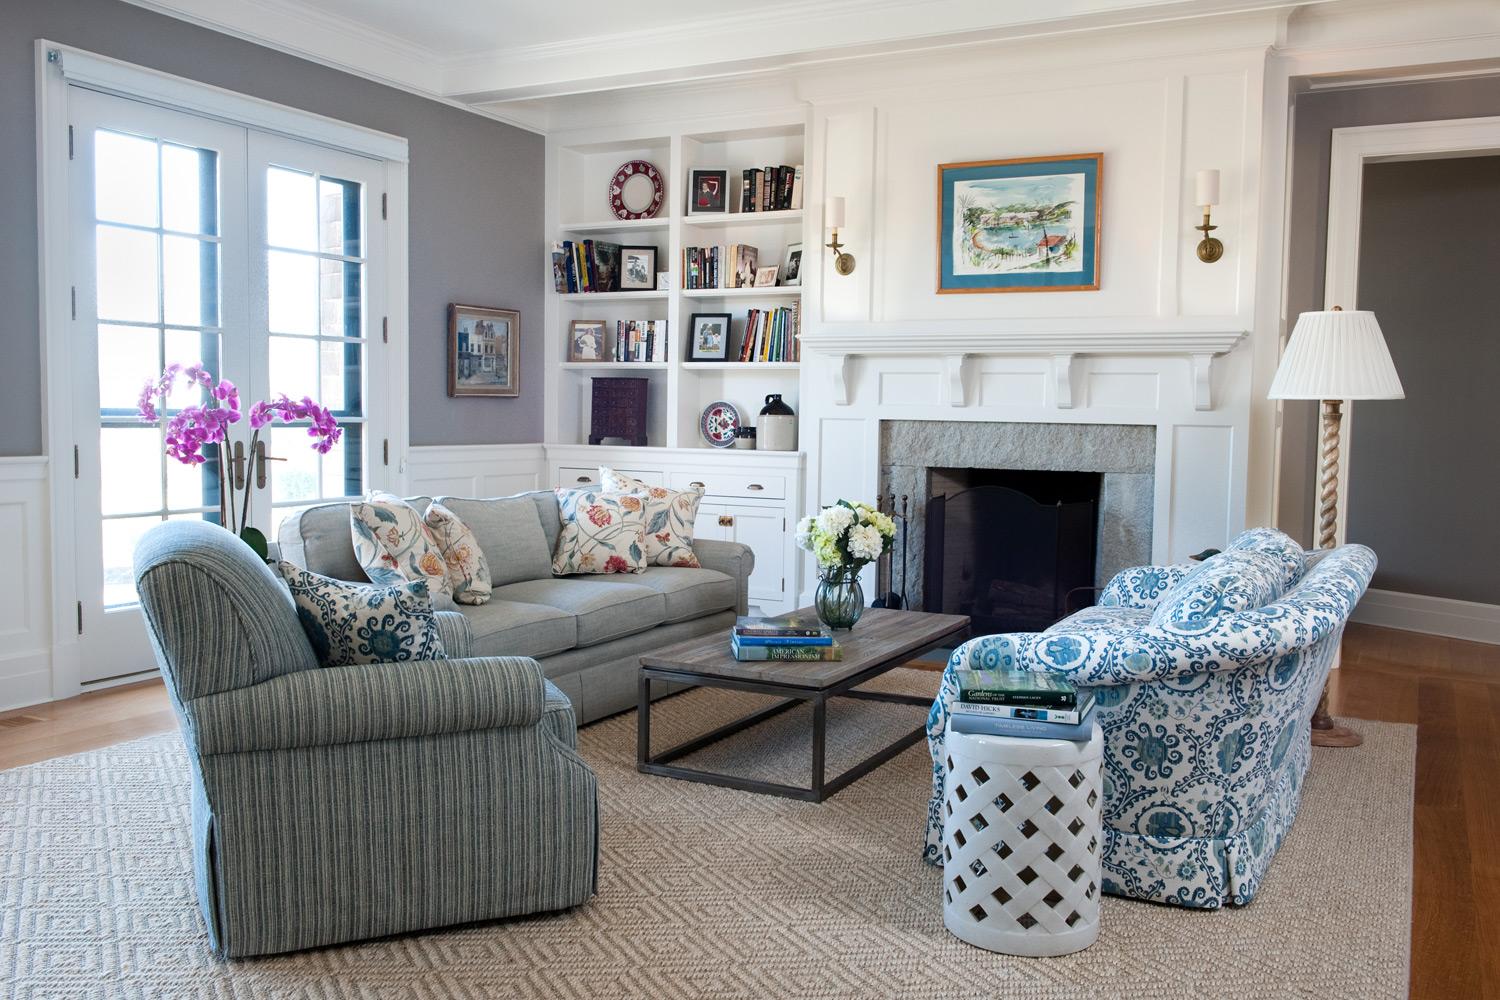 new lounge ideas exquisite new living room ideas 8 epic england 80 upon furniture YCWPXOI